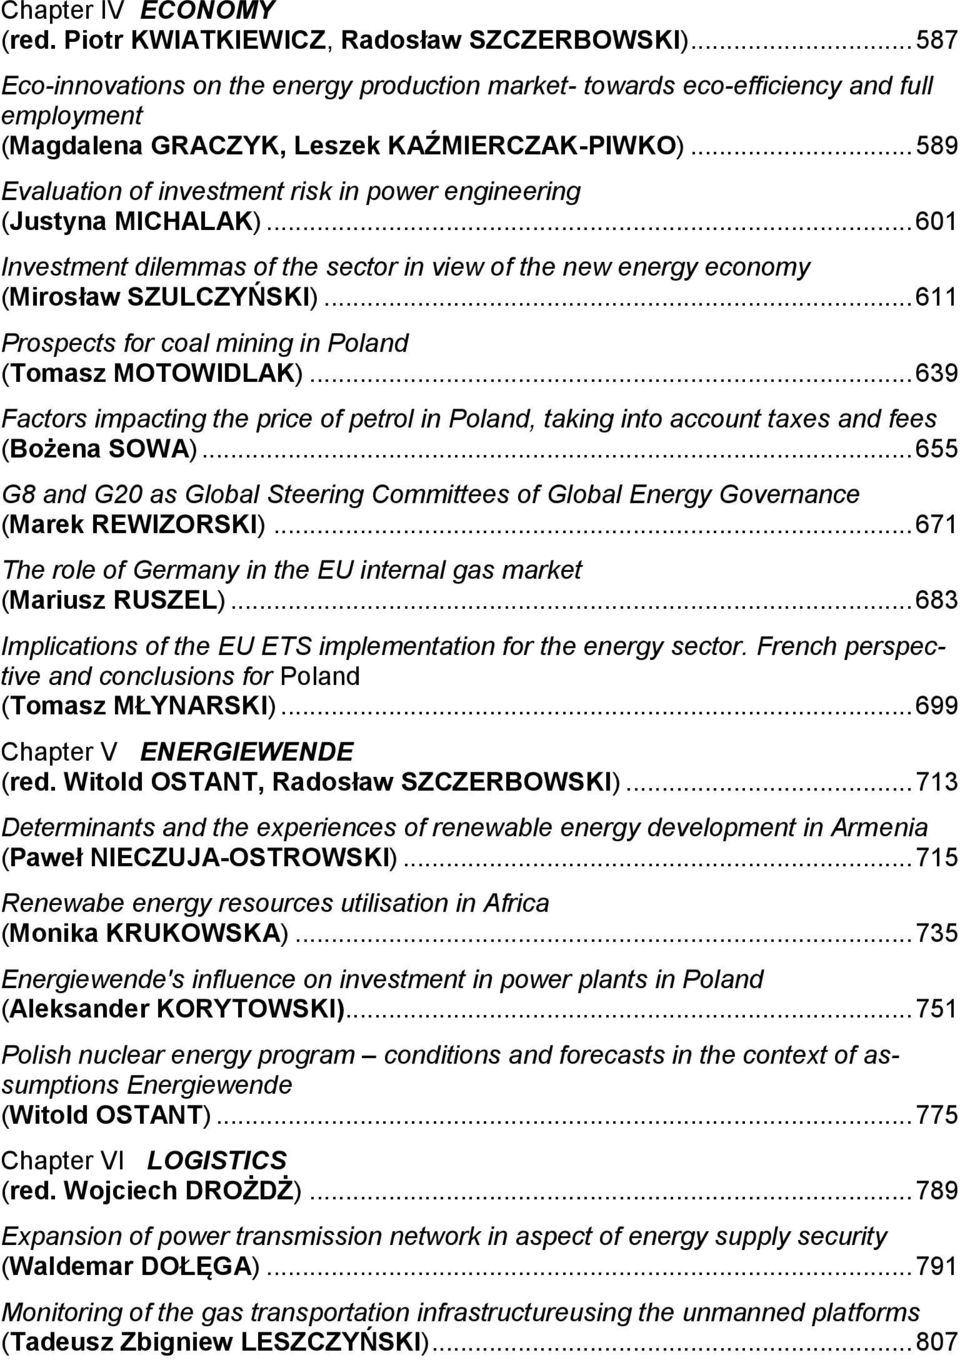 .. 589 Evaluation of investment risk in power engineering (Justyna MICHALAK)... 601 Investment dilemmas of the sector in view of the new energy economy (Mirosław SZULCZYŃSKI).